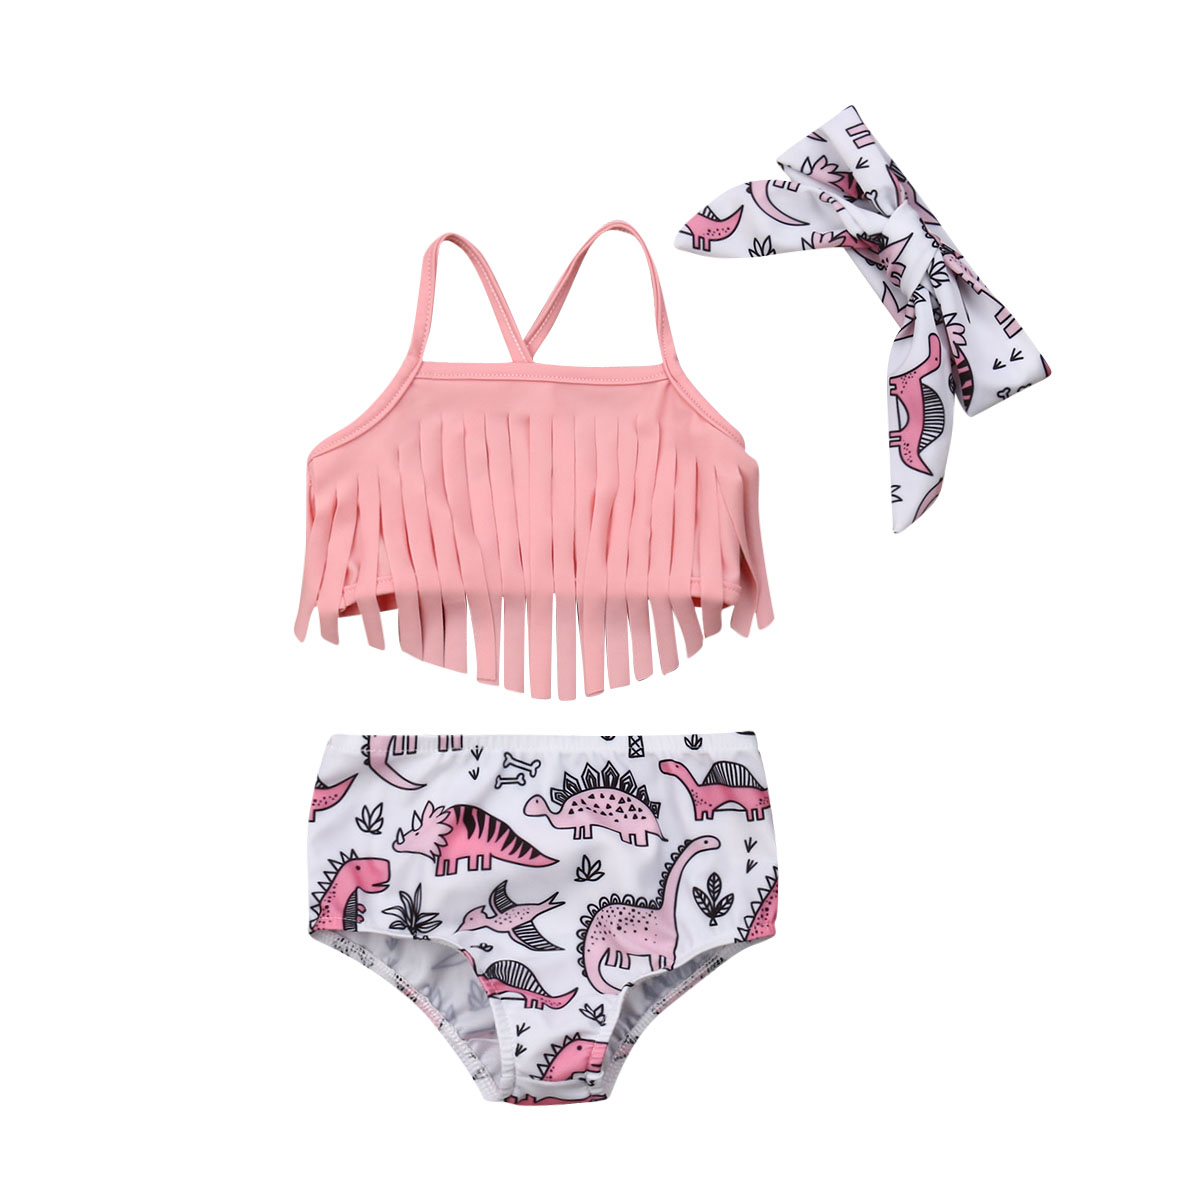 Baby Swimsuit 2019 New Summer Kids Girls Tassel Strap Tops Dinosaur Bottom Headband 3PCS Swimwear Beachwear Bathing Suit 0-24M